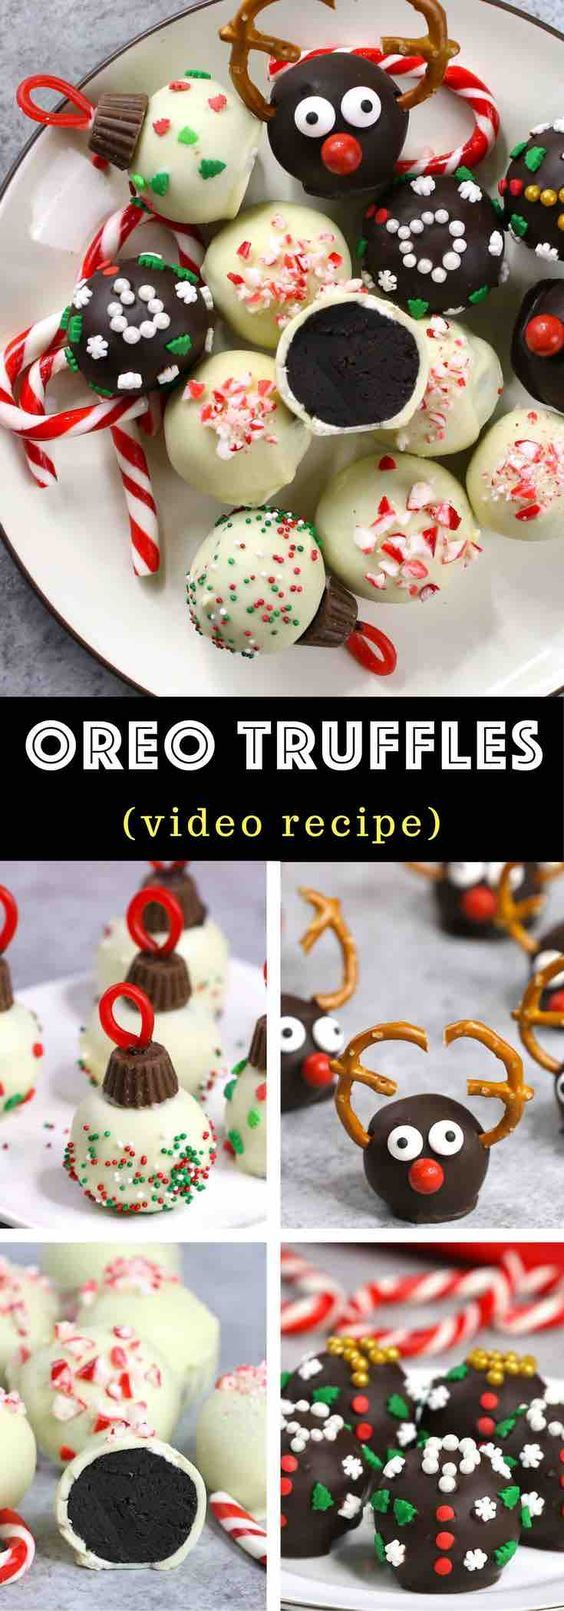 Holiday Oreo Truffles 4 Ways - the easiest and most delicious bite size oreo truffle, perfect for a holiday party or as holiday gifts. Reindeer oreo truffles, Peppermint oreo truffles, Christmas Tree Ornament Oreo Truffles and Ugly Christmas Sweater Oreo Truffles. Video Recipe. tipbuzz.com